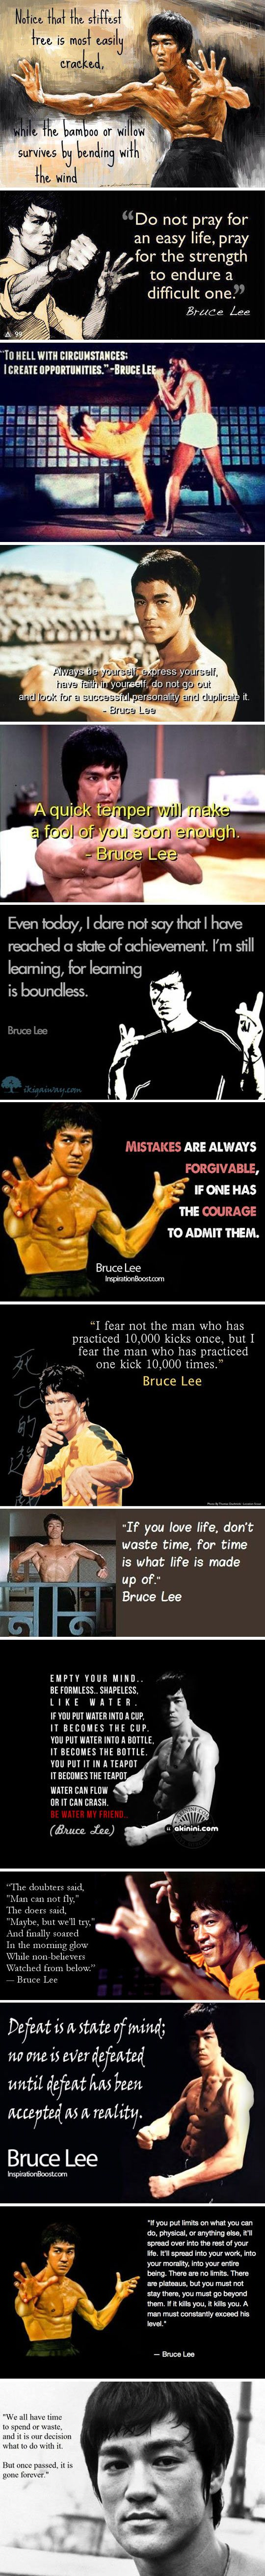 Bruce Lee Awesomeness - The Meta Picture